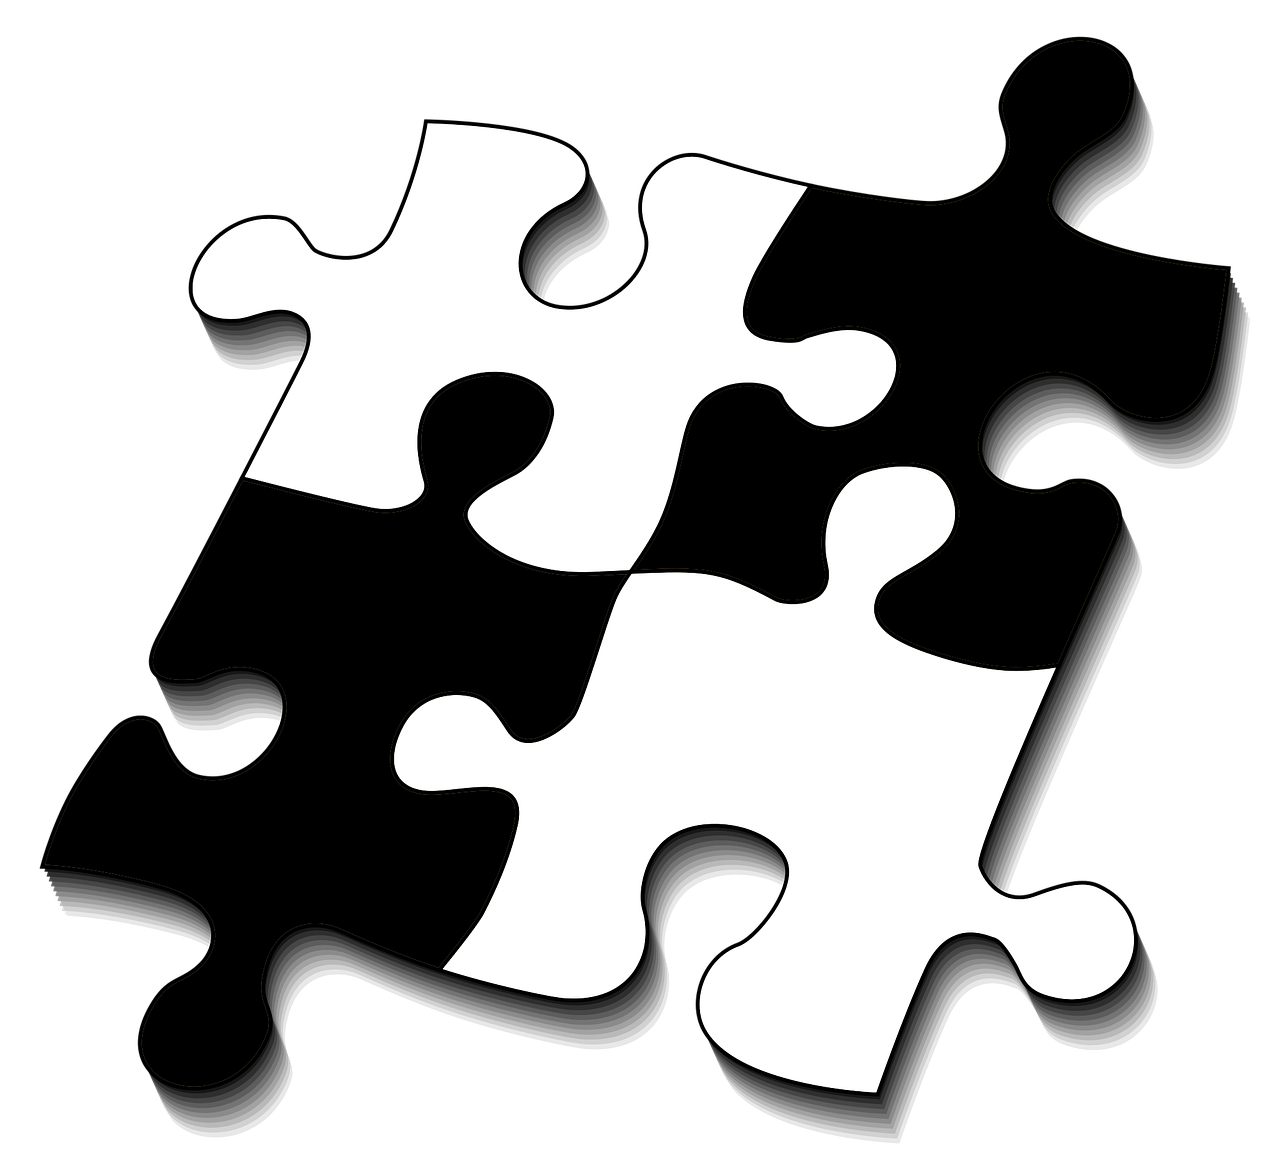 puzzle-1152800_1280.png